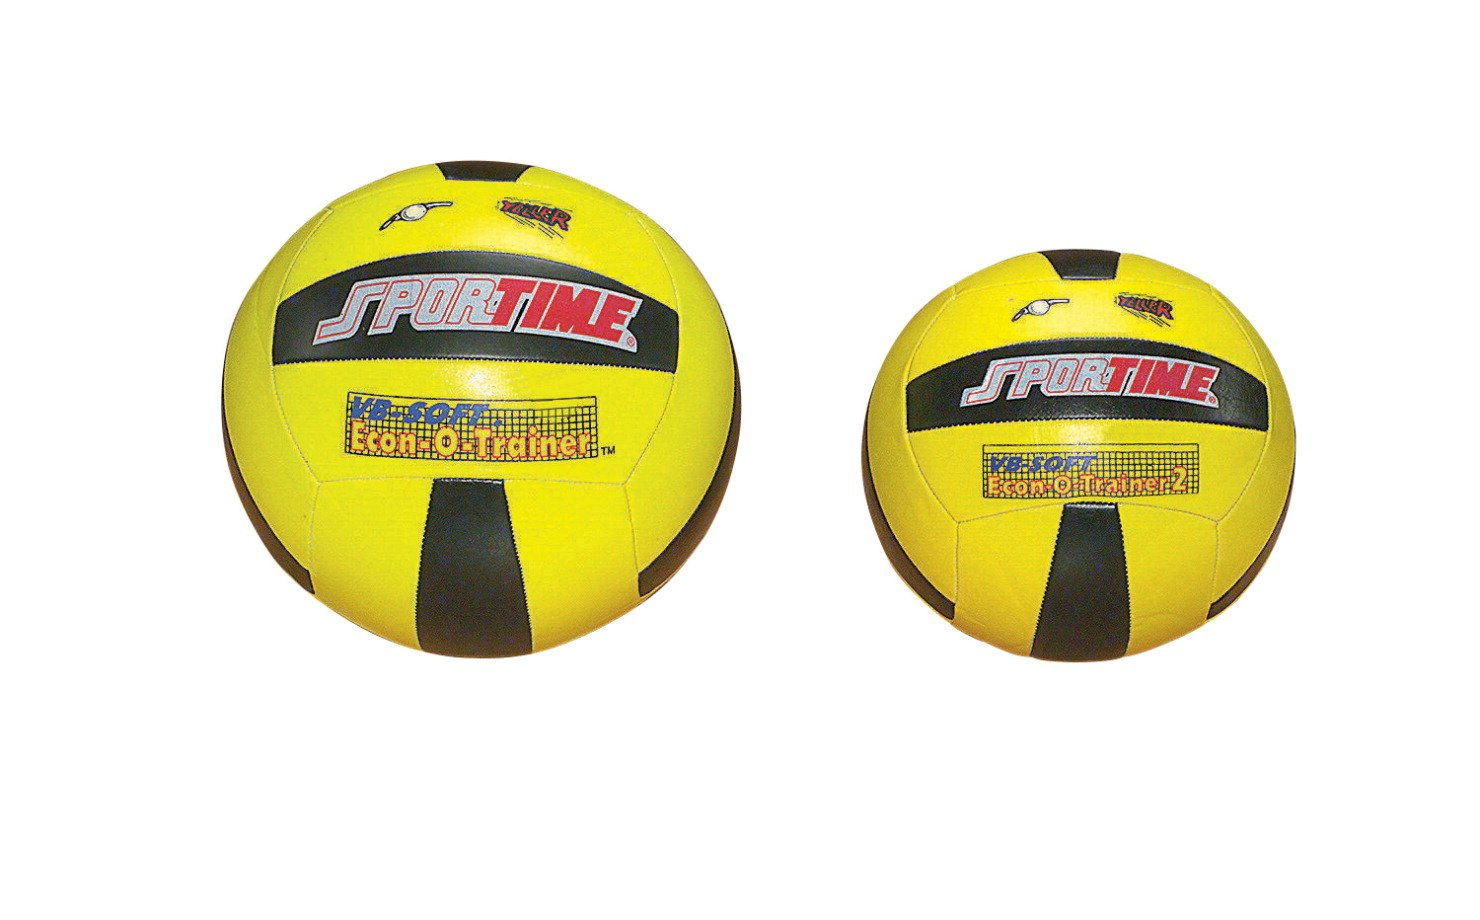 Sportime Soft Econ-O-Trainer II Volleyball